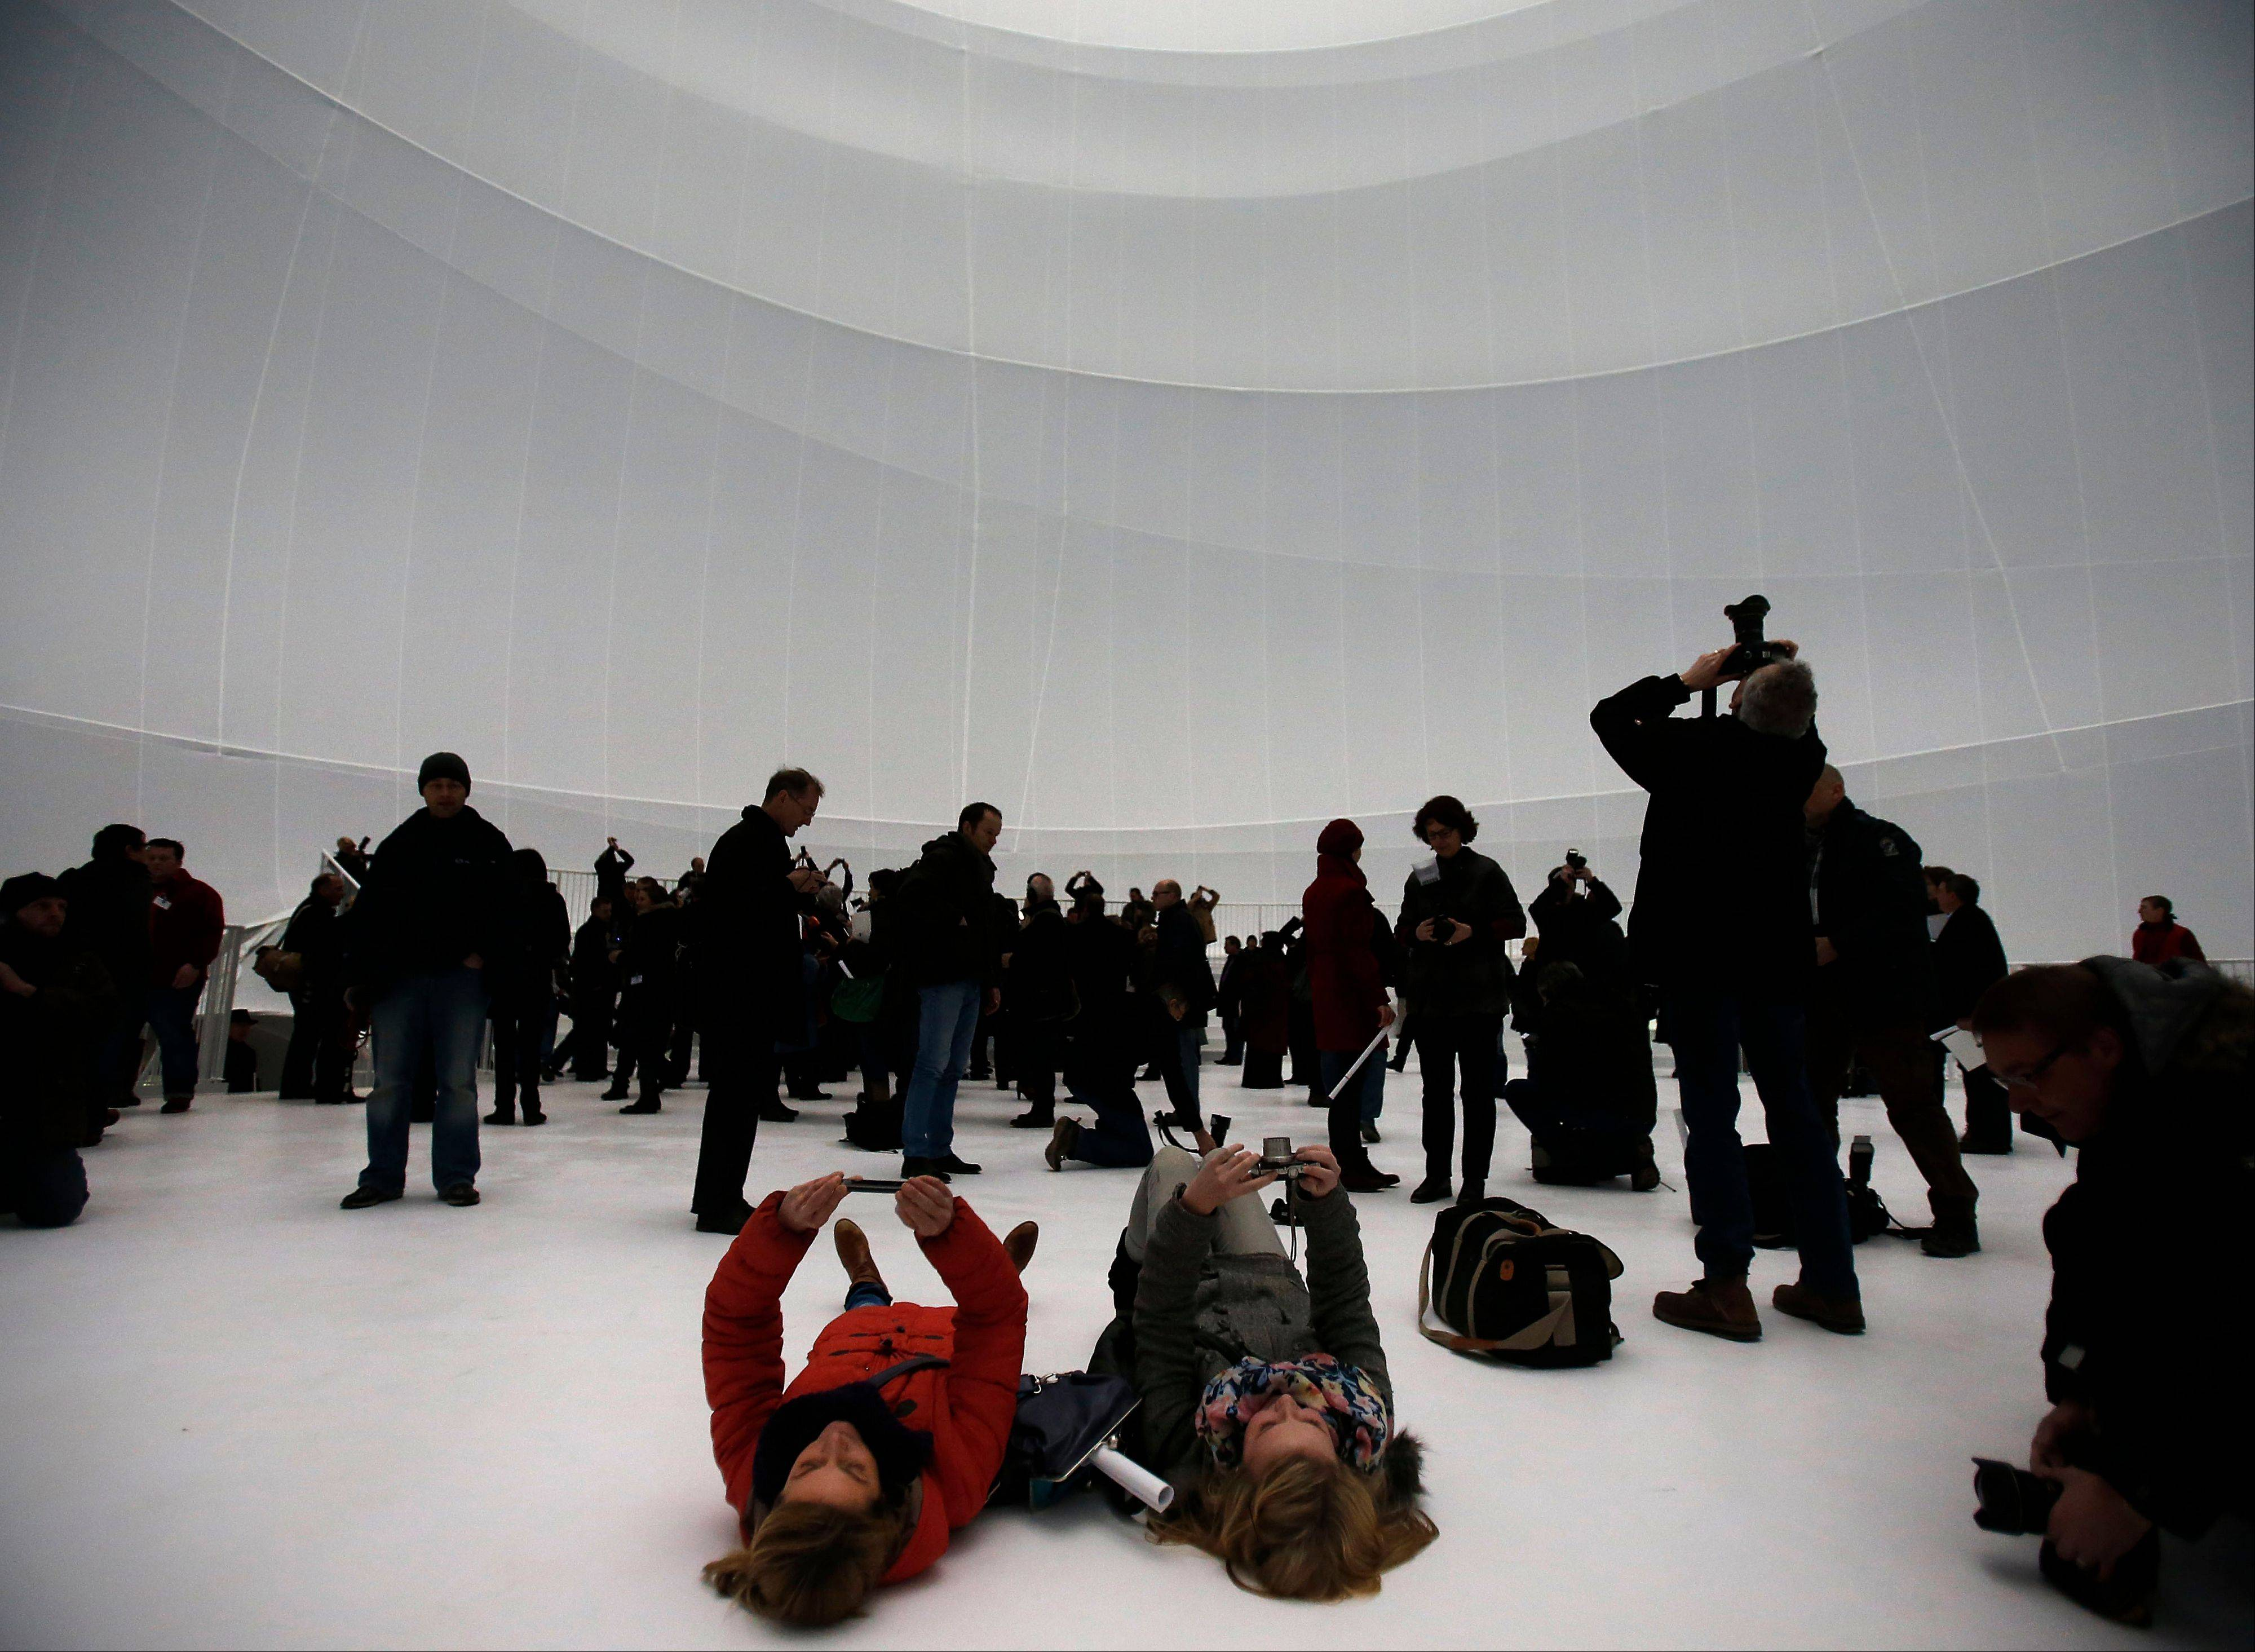 Visitors take pictures Friday inside the installation 'Big Air Package' during the unveiling at the Gasometer in Oberhausen, Germany.